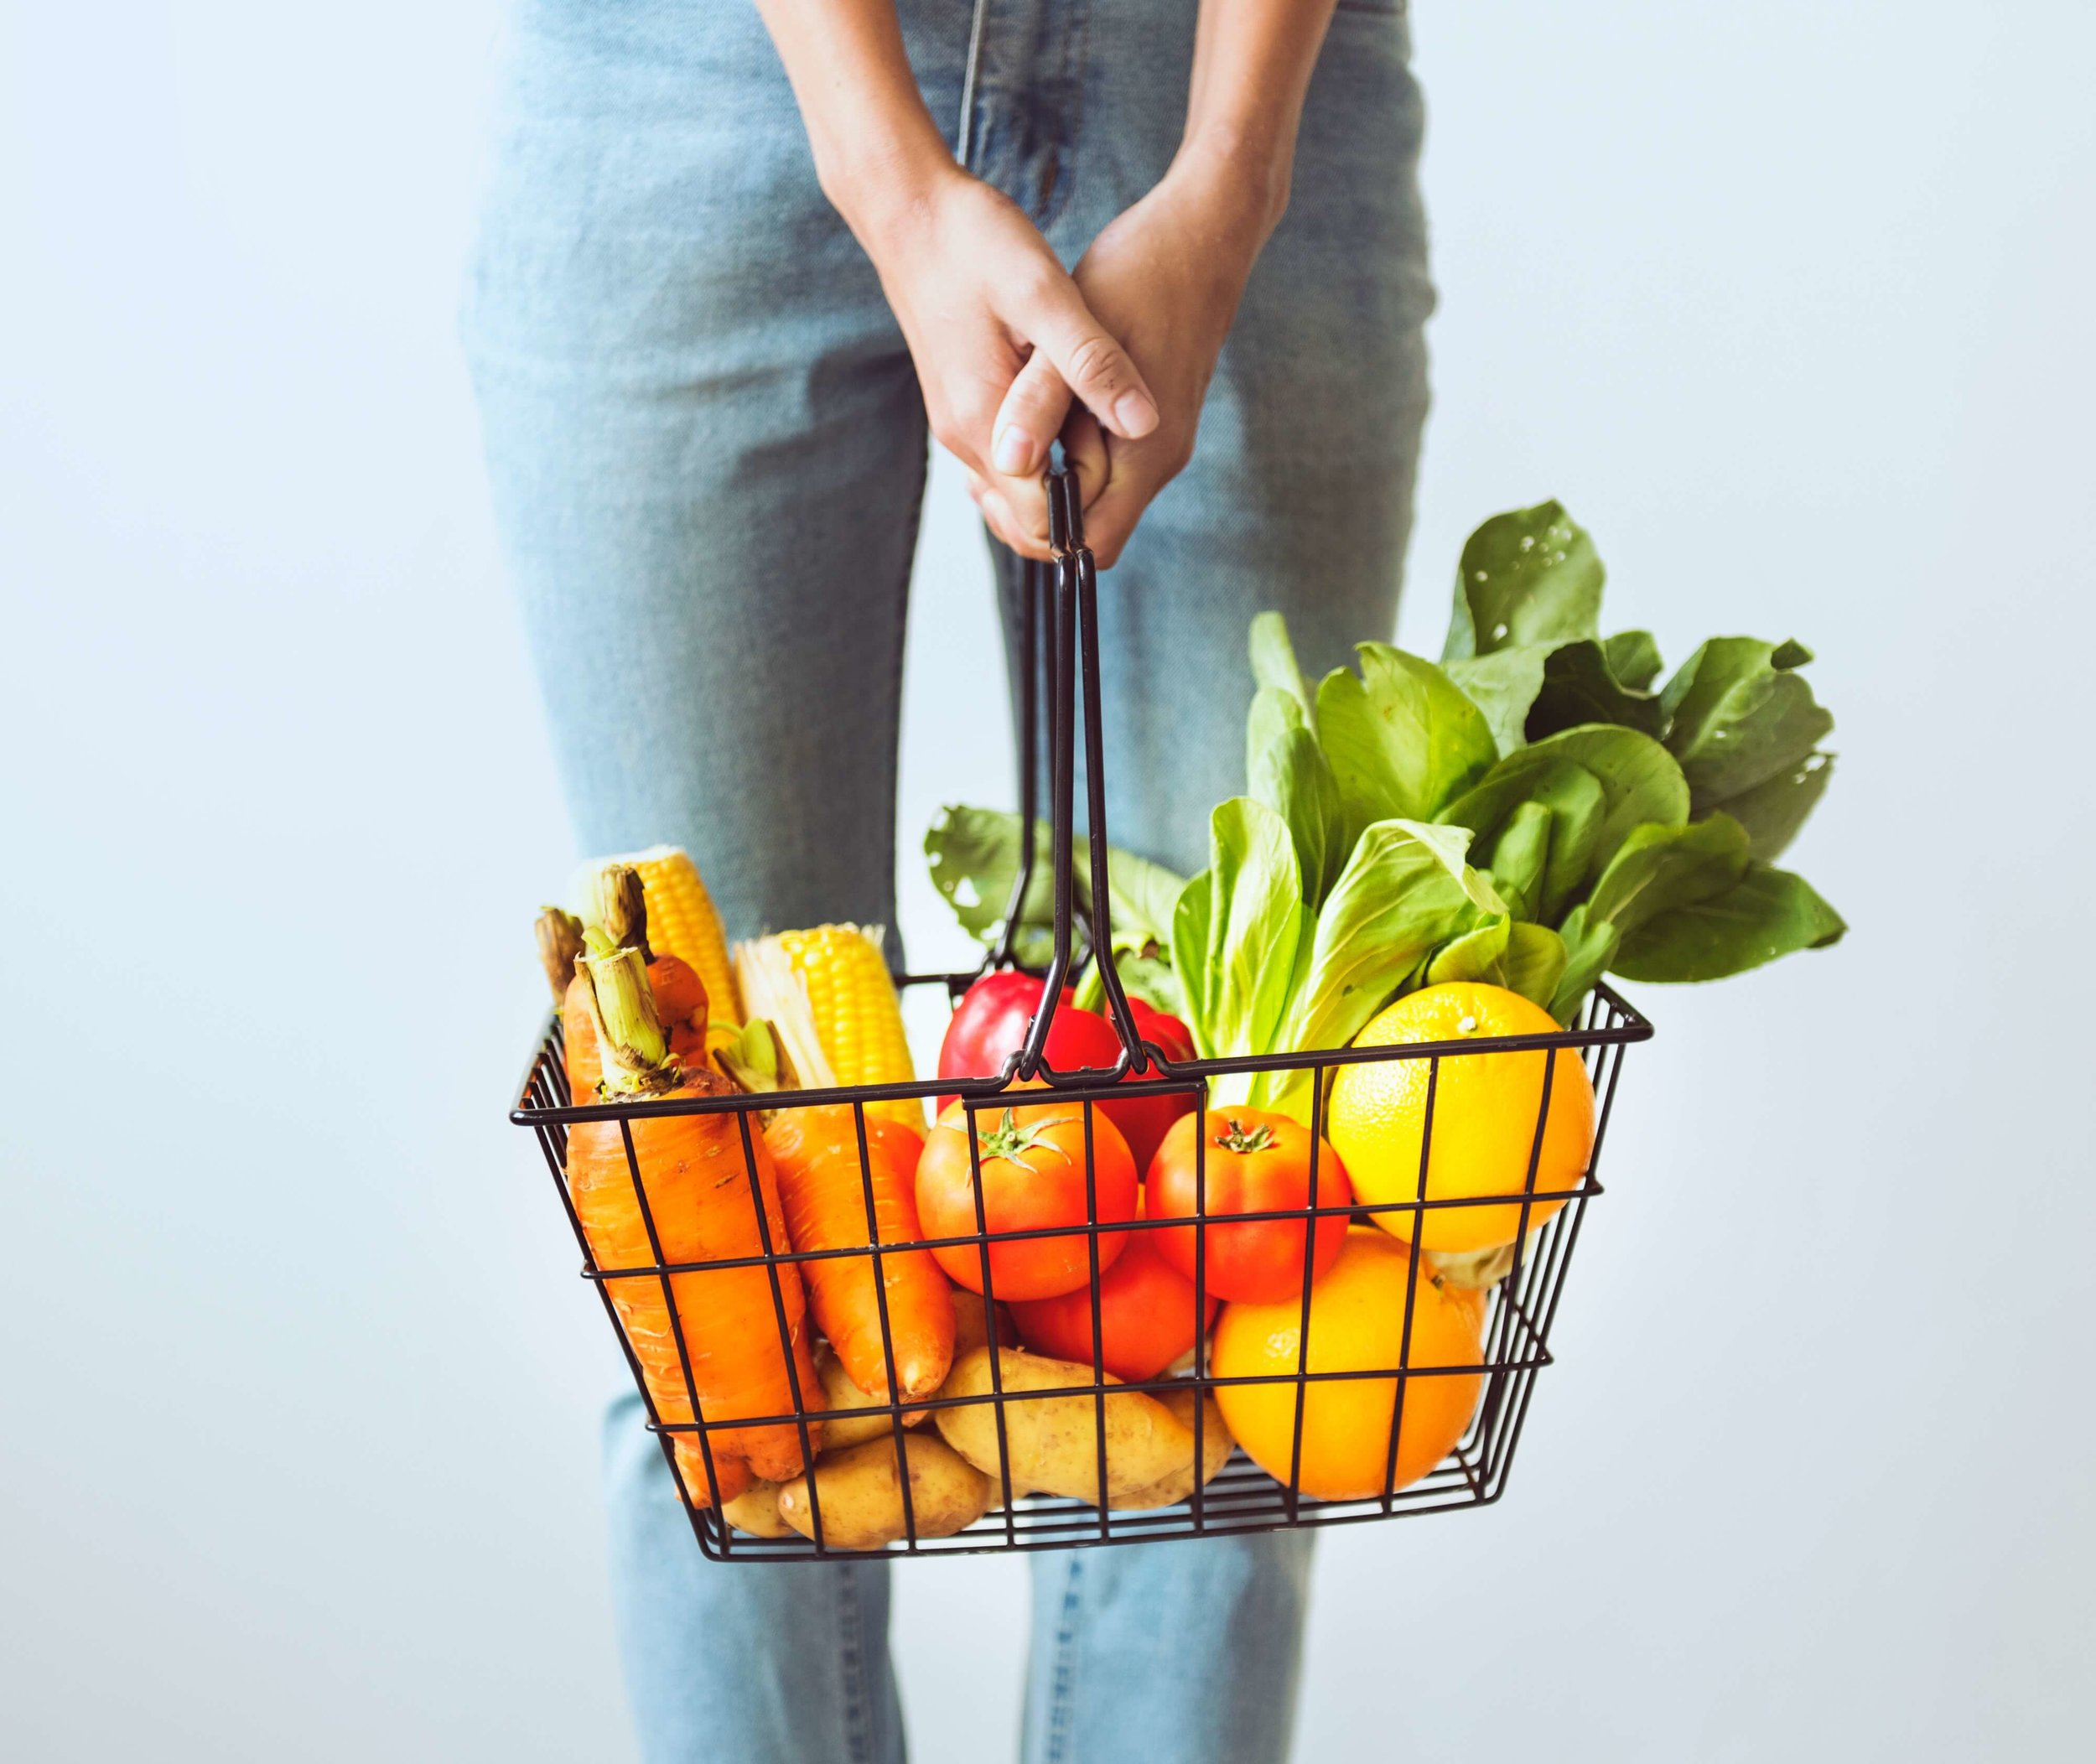 veg shopping basket.jpg